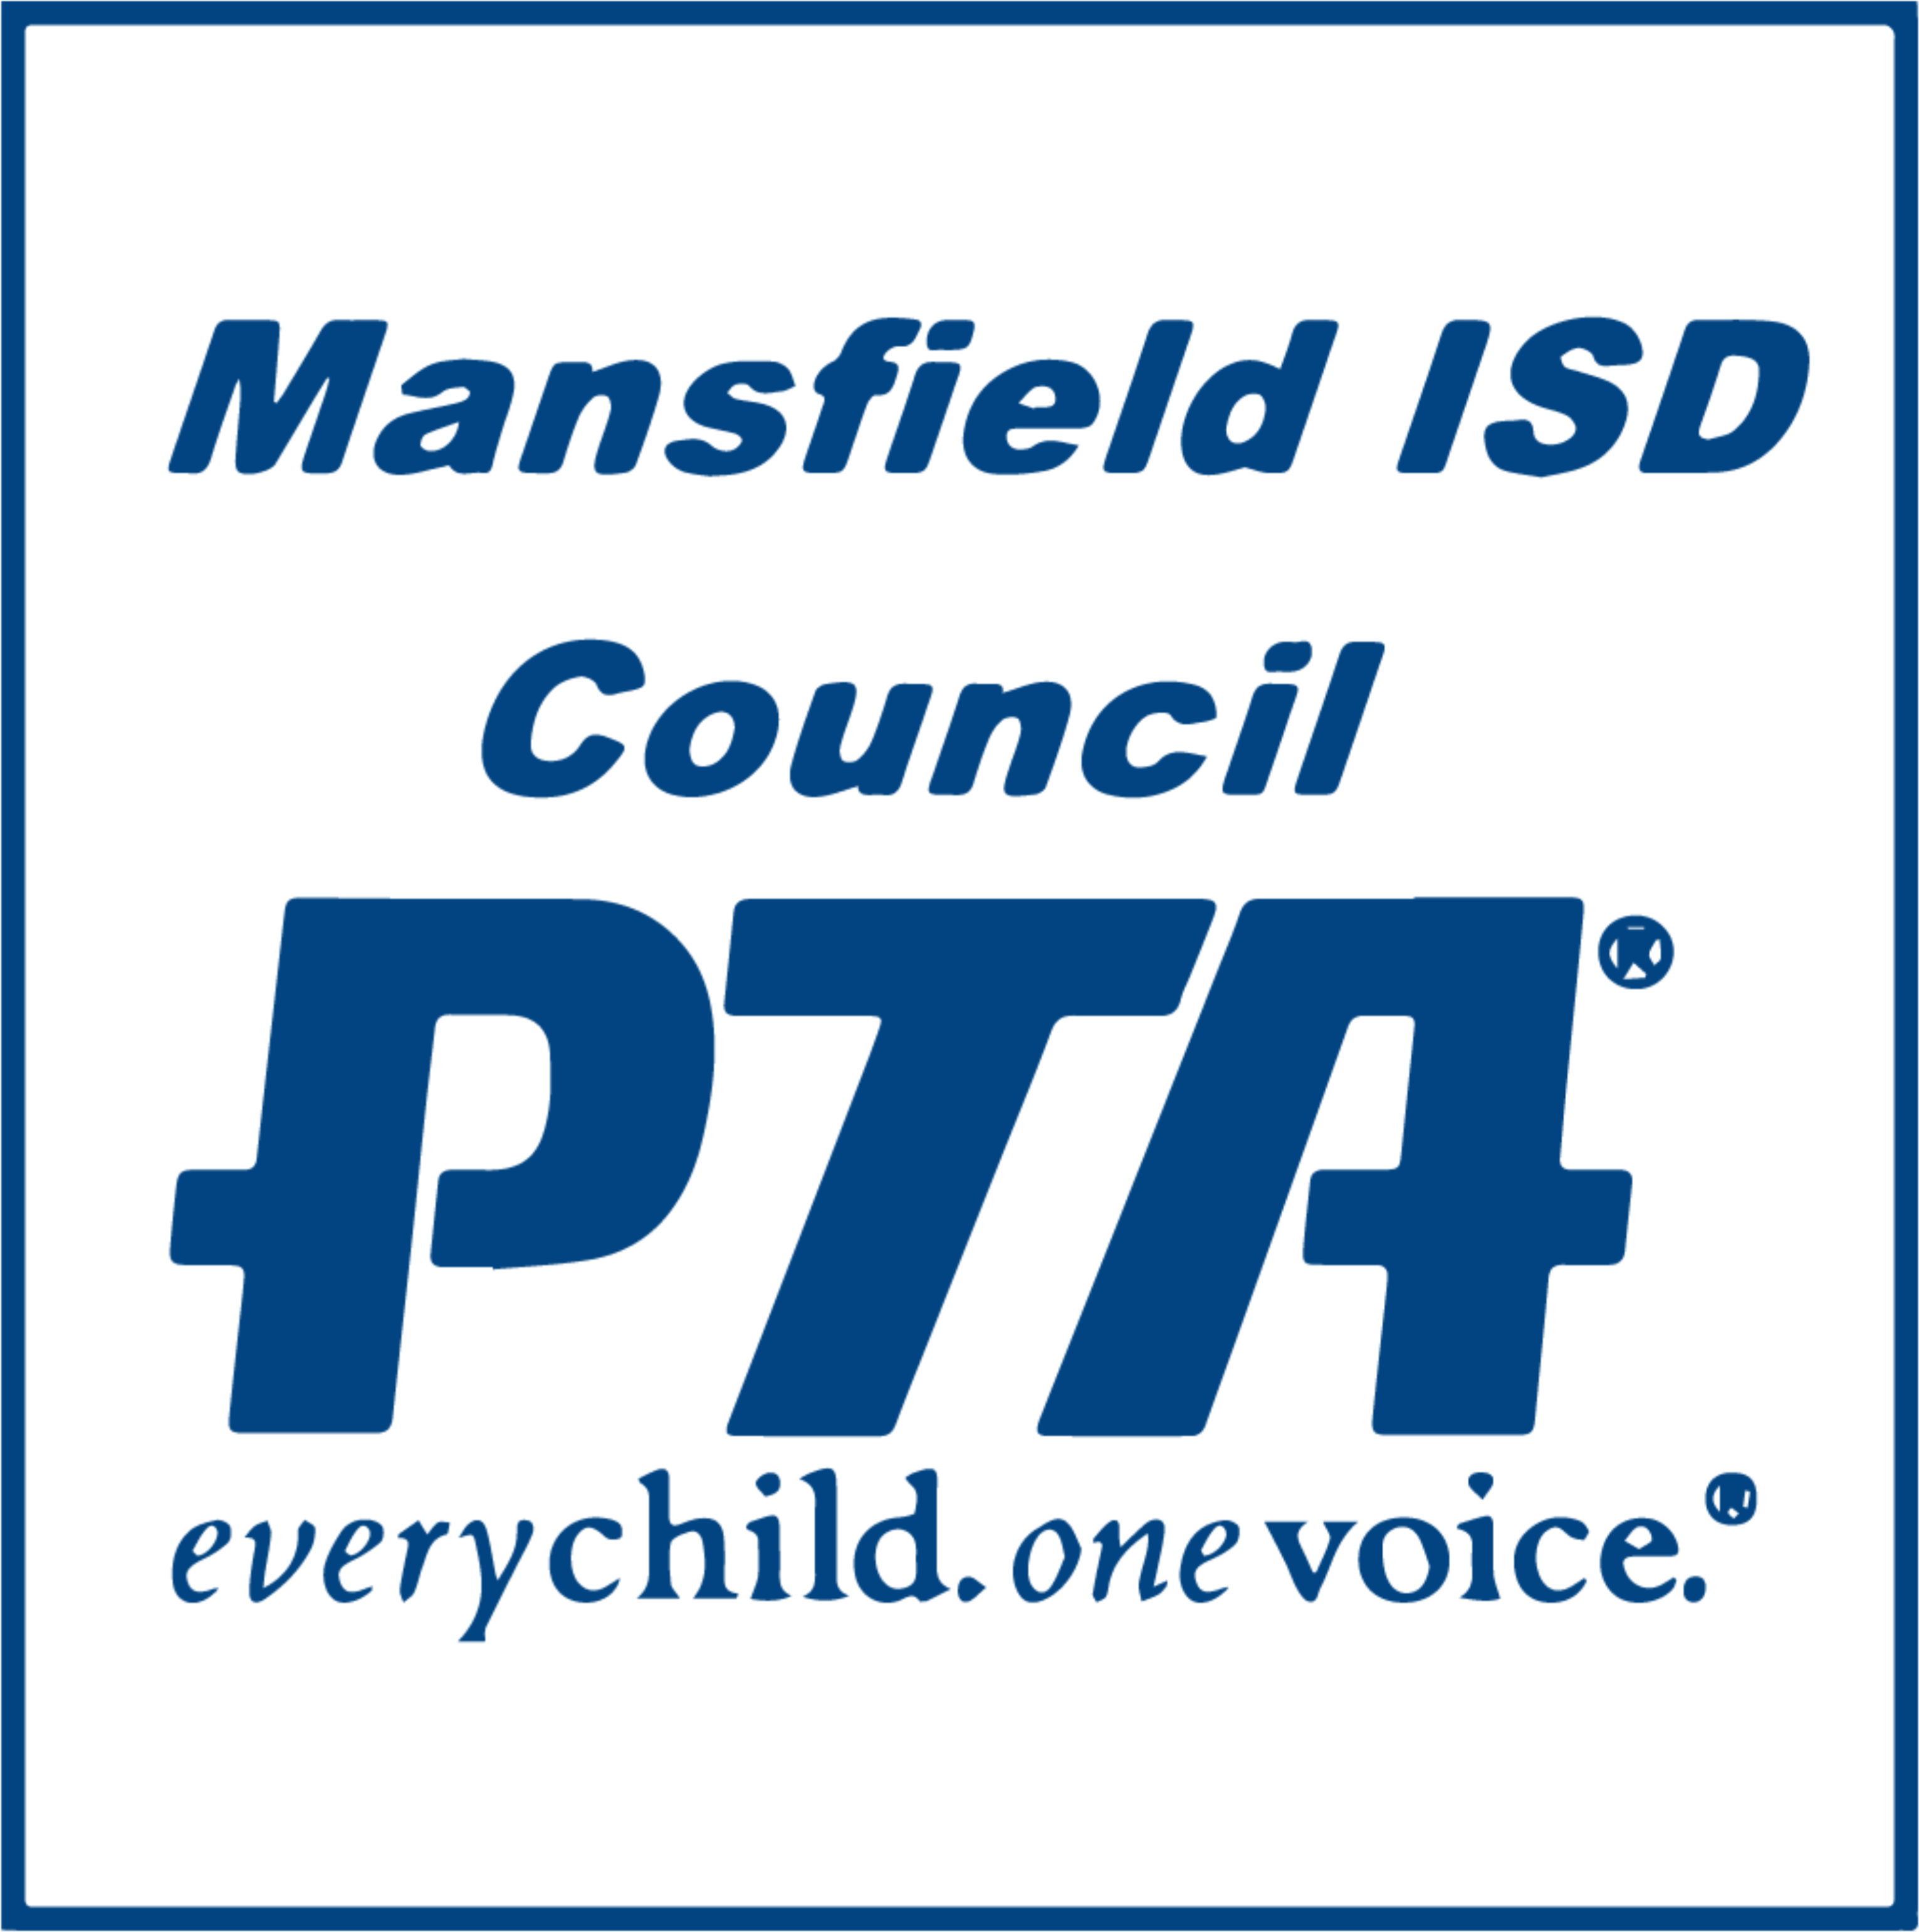 Mansfield ISD Council of PTAs